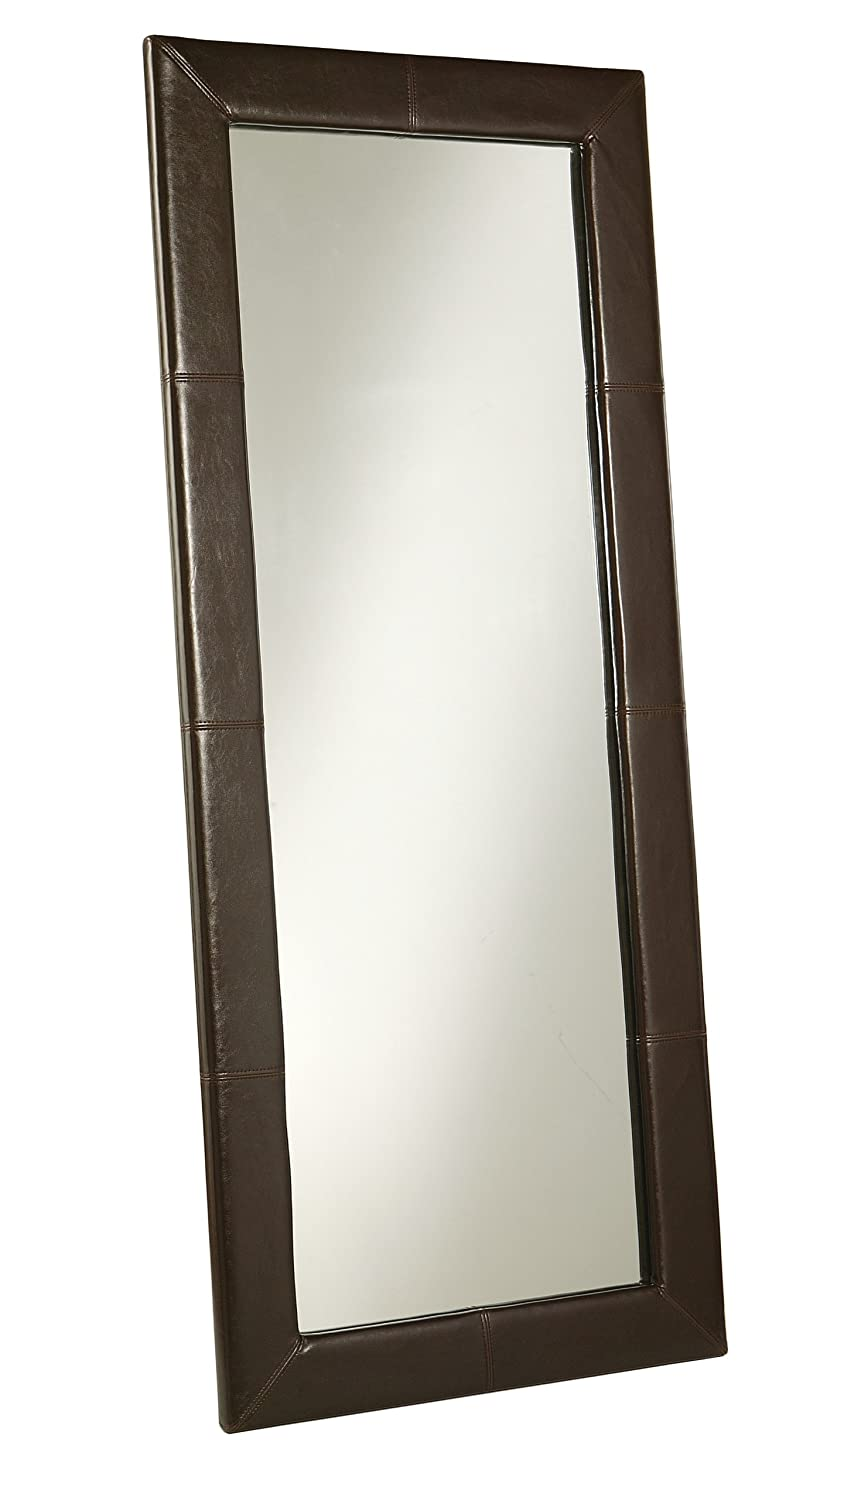 Amazon.com: Abbyson® Allure Brown Leather Floor Mirror: Home & Kitchen